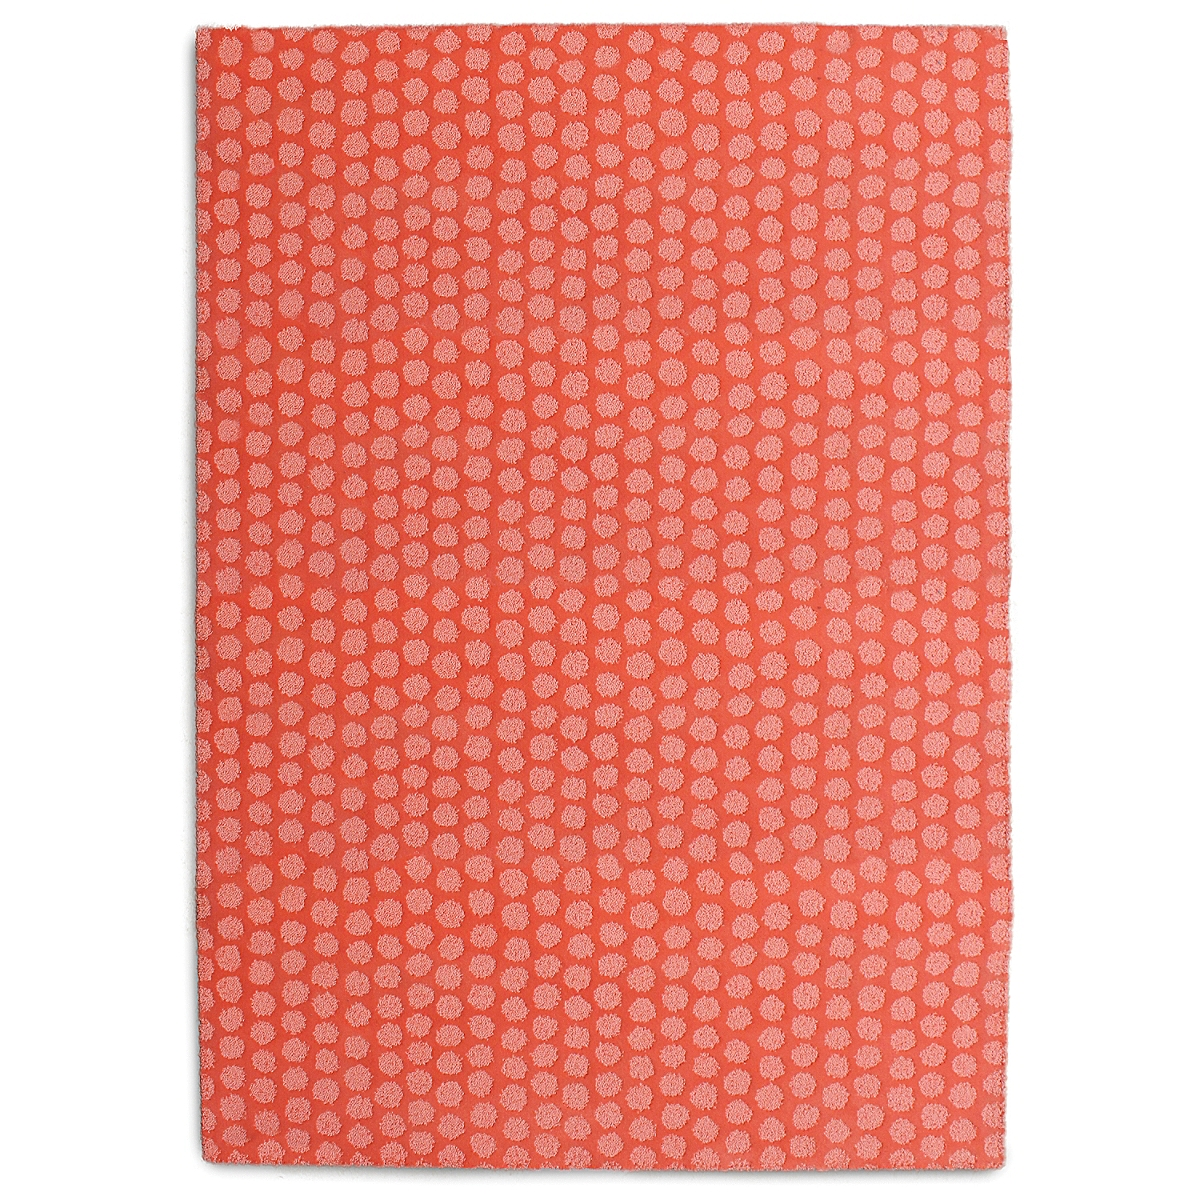 Outdoor Rug - Hotty Dotty / Zinnia